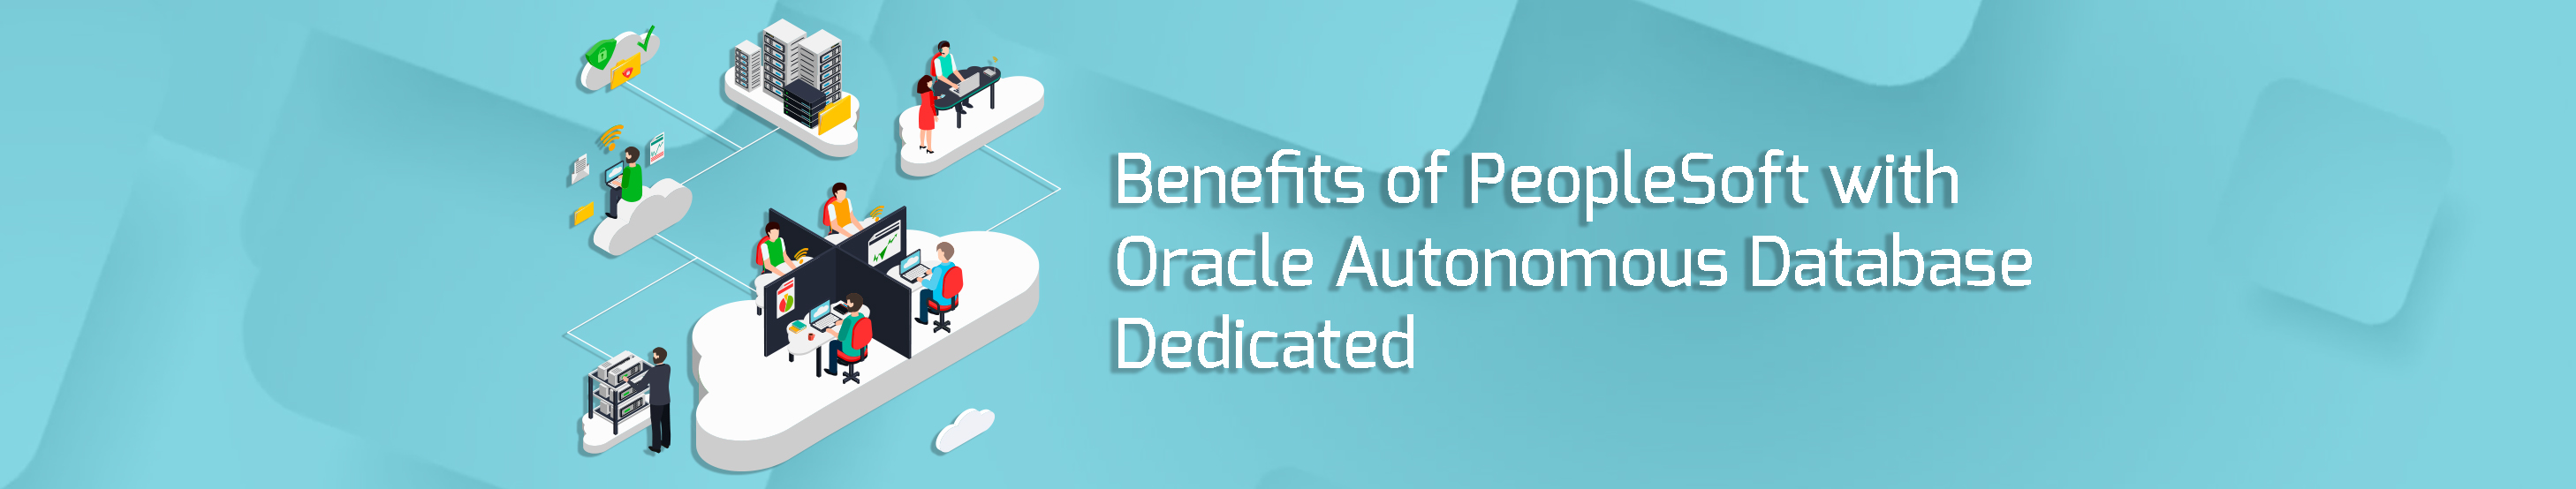 Benefits of PeopleSoft with Oracle Autonomous Database Dedicated